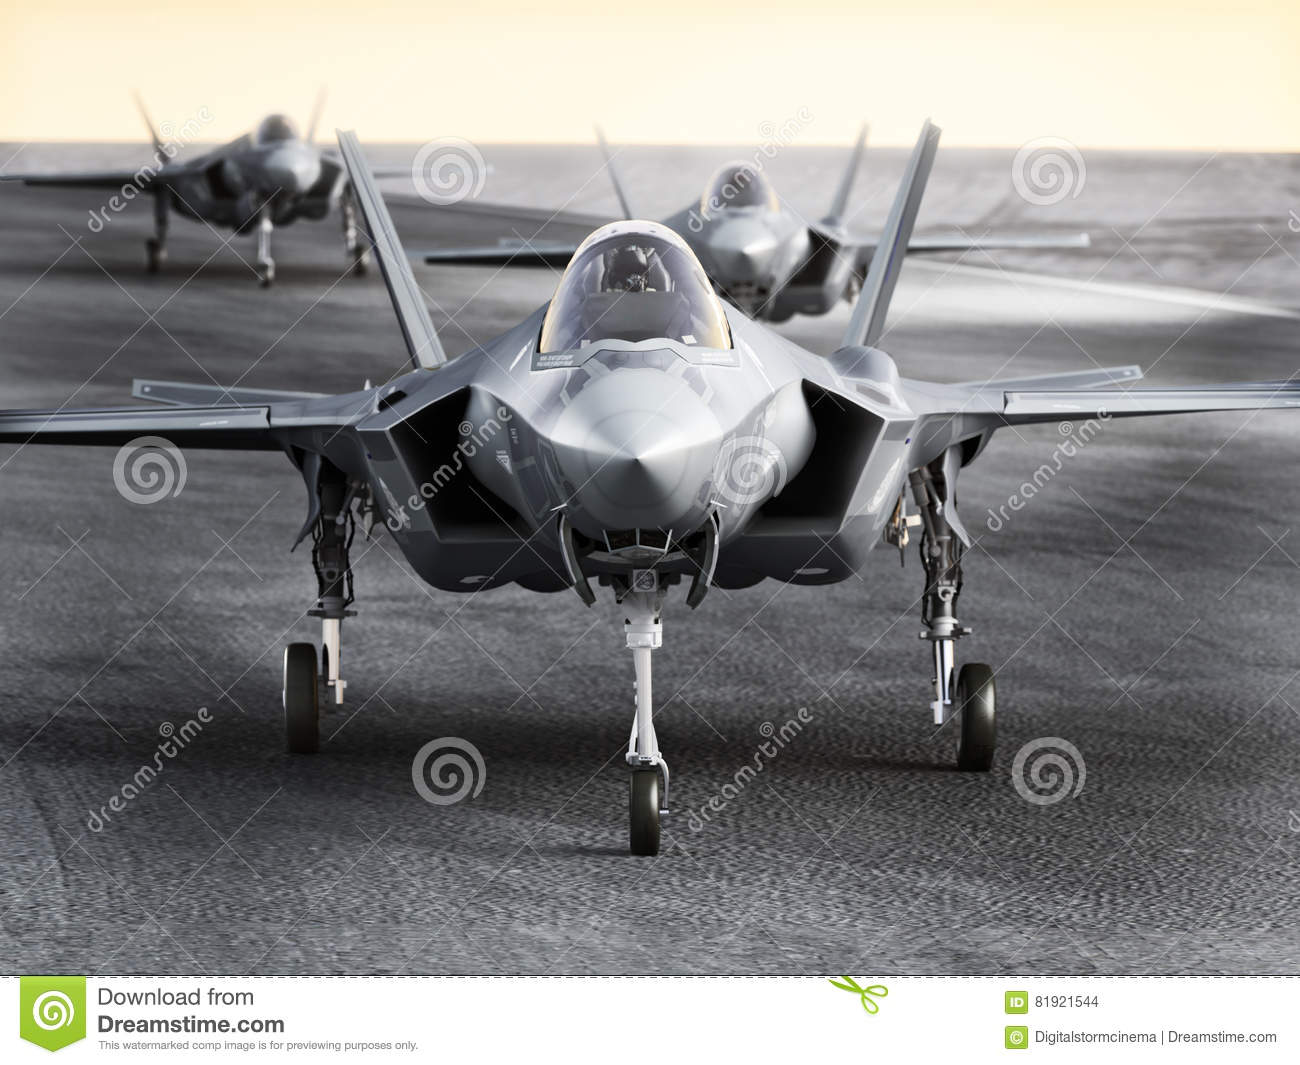 multiple f35 military jet strike aircraft preparing for takeoff on a